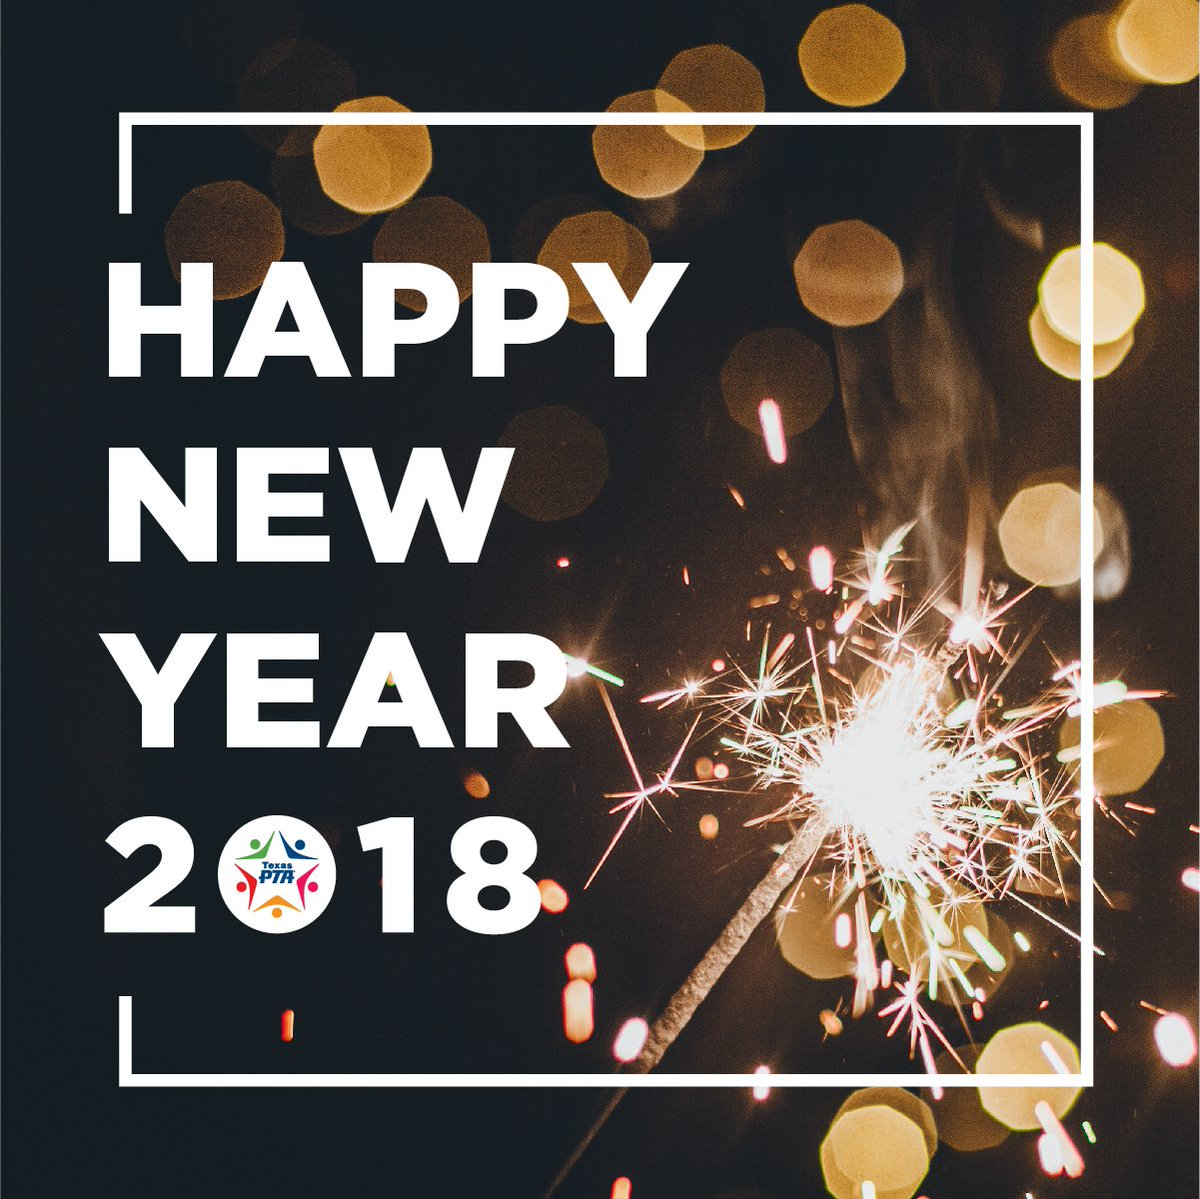 texas pta on twitter join us for another year in our commyounity and lets backthefuture of every child together in 2018 happy new year